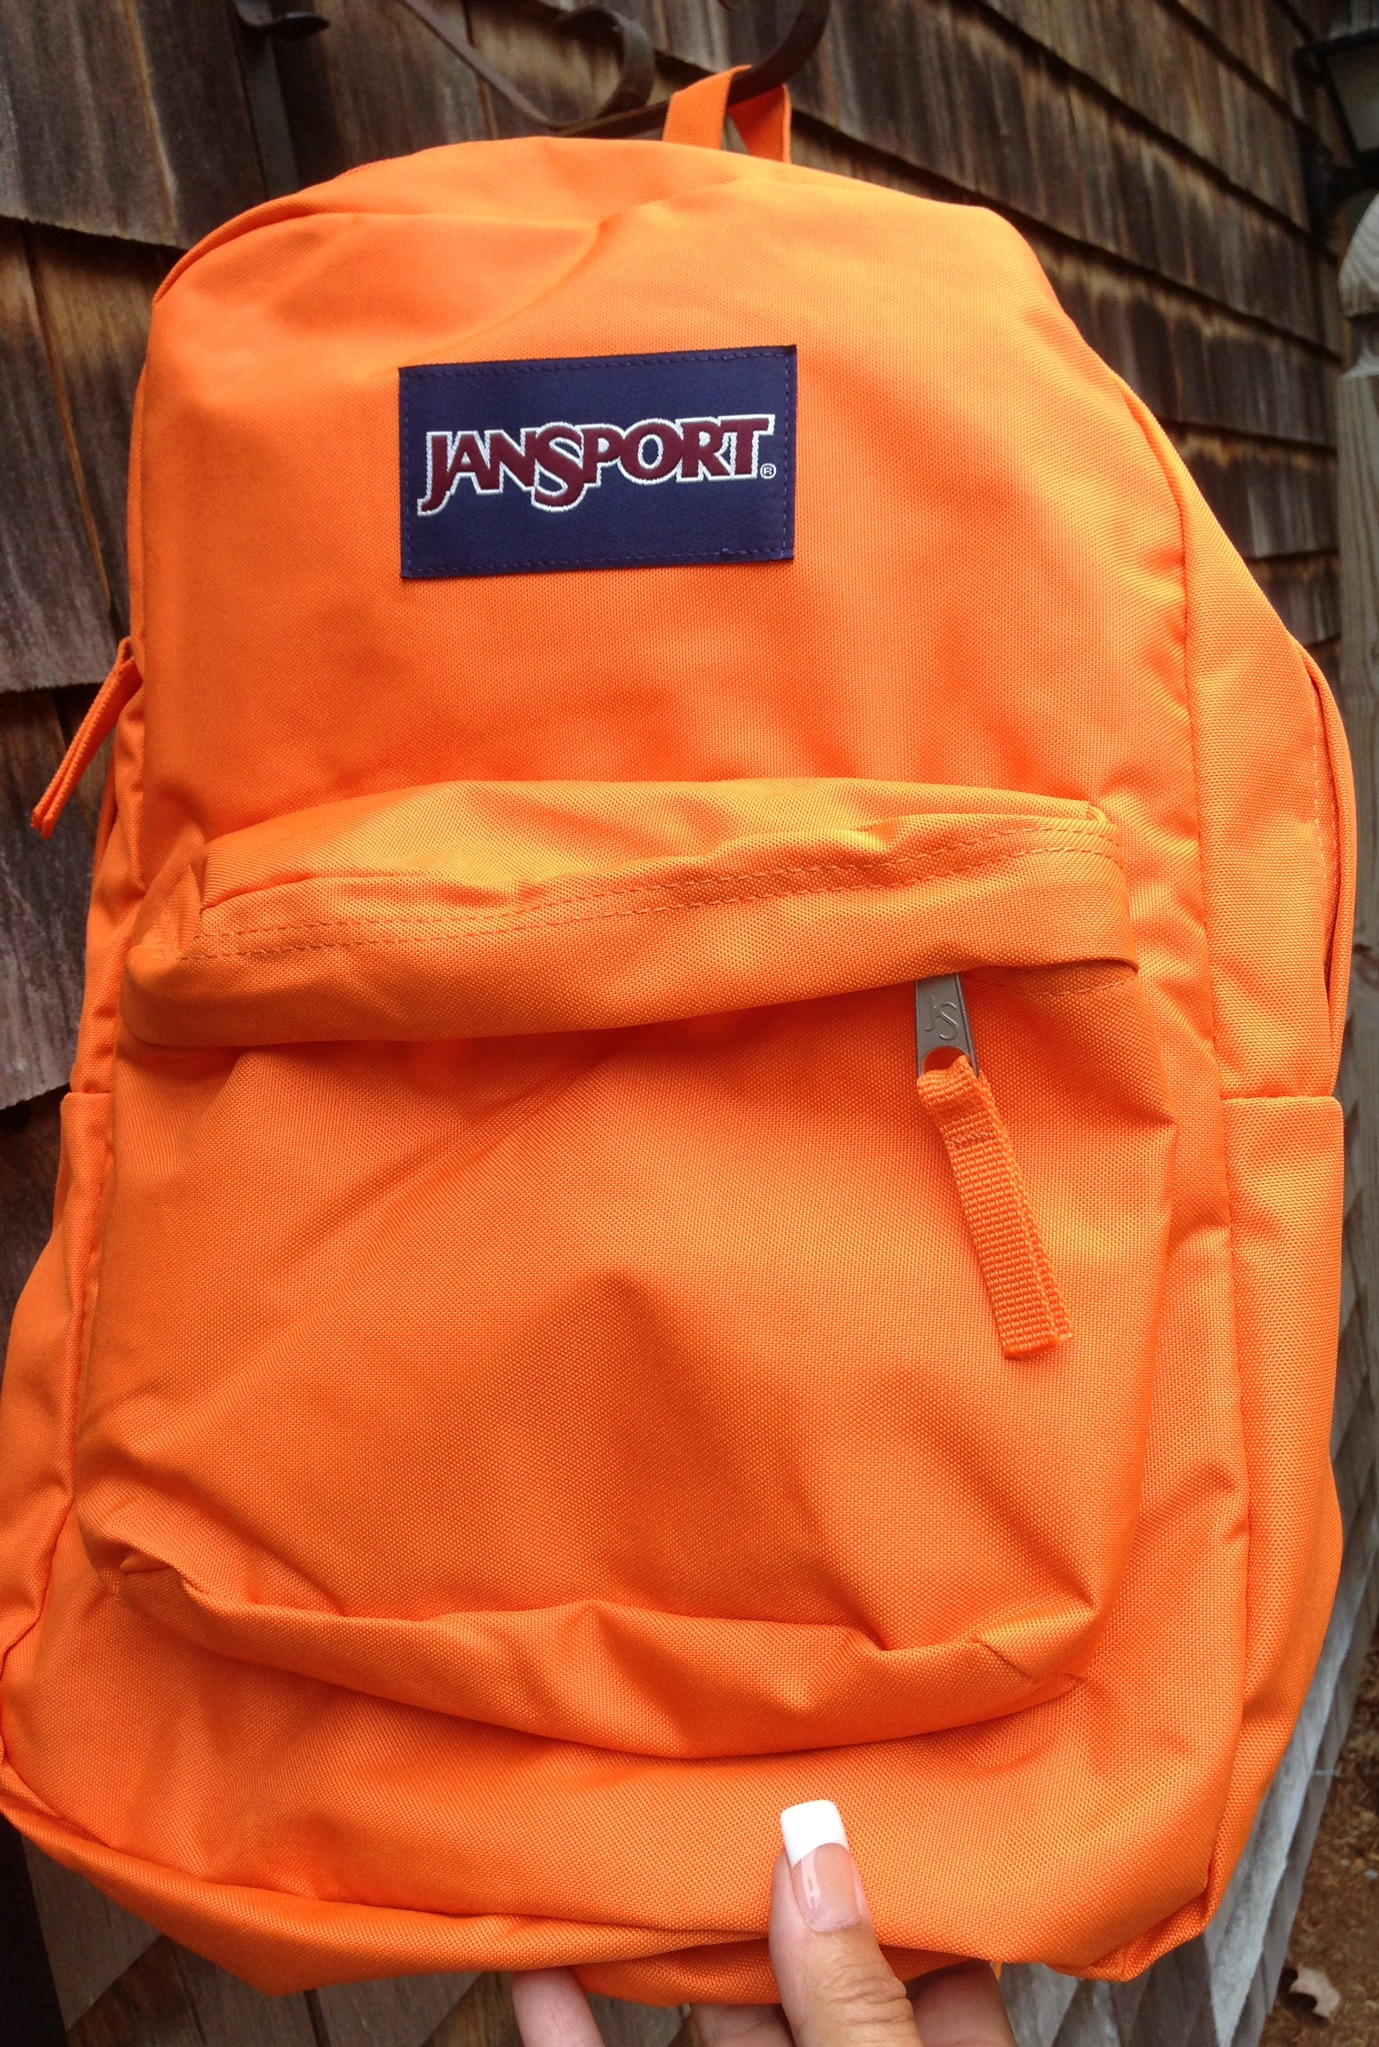 Neon Orange Jansport Backpack be7gIzmn